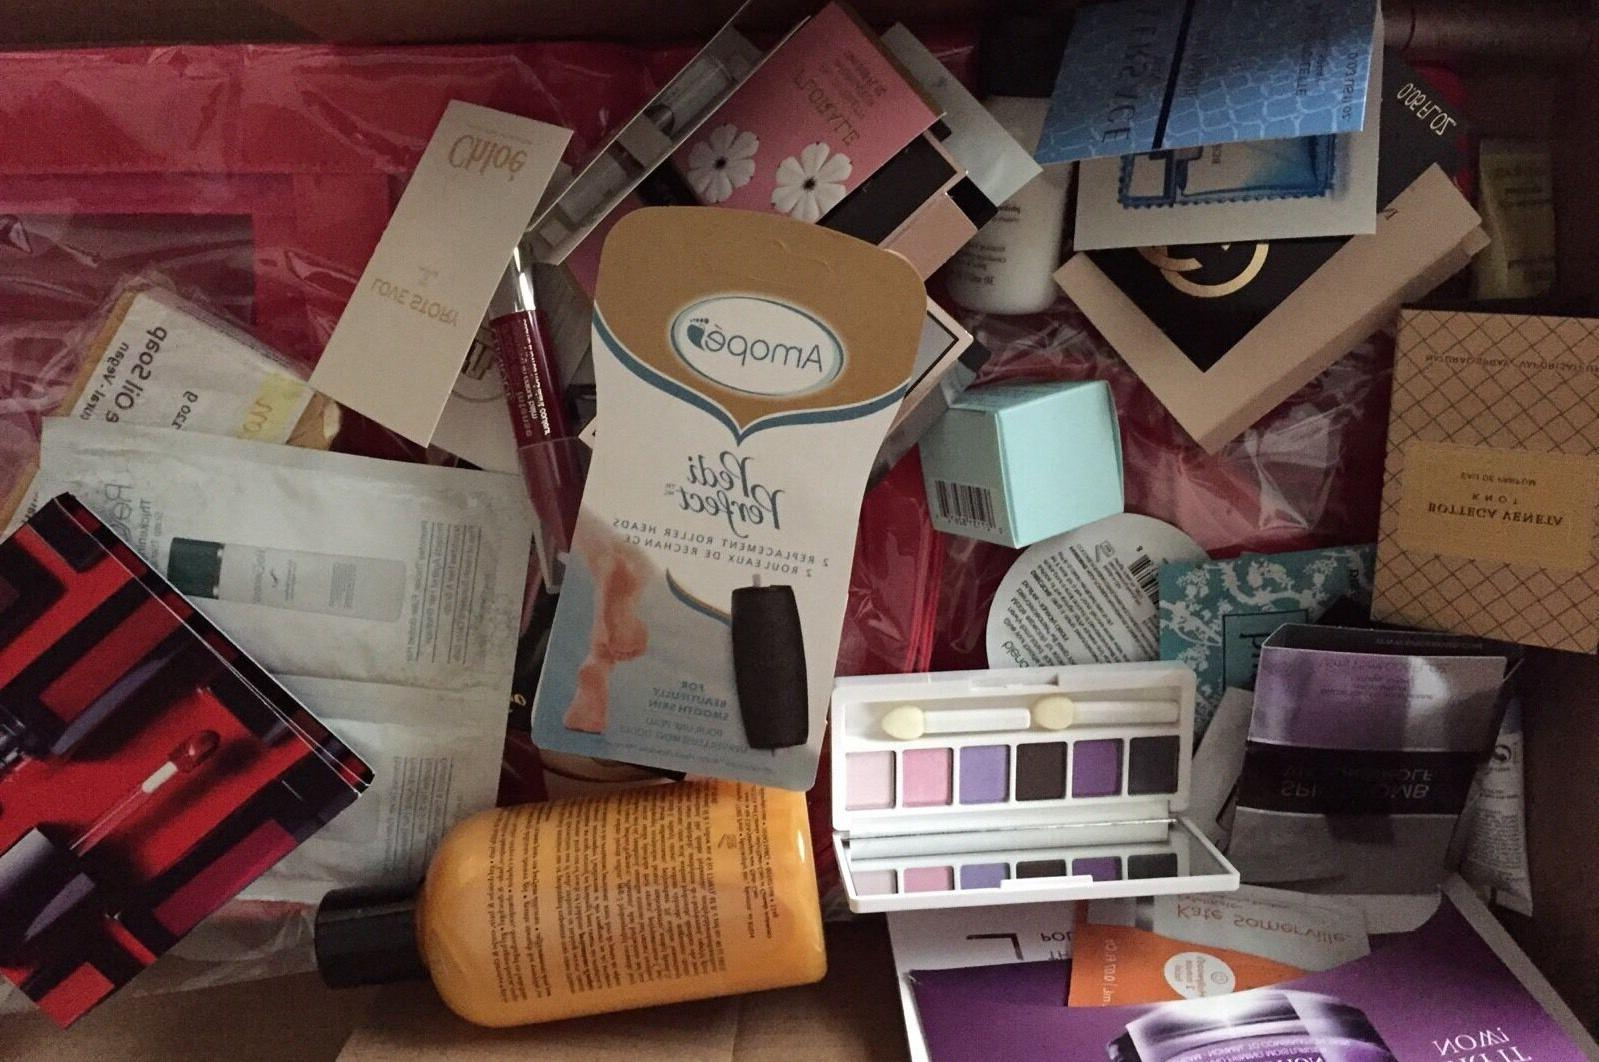 15pc LOT SIZE/TRAVEL/DELUXE BEAUTY GRAB BAG FROM